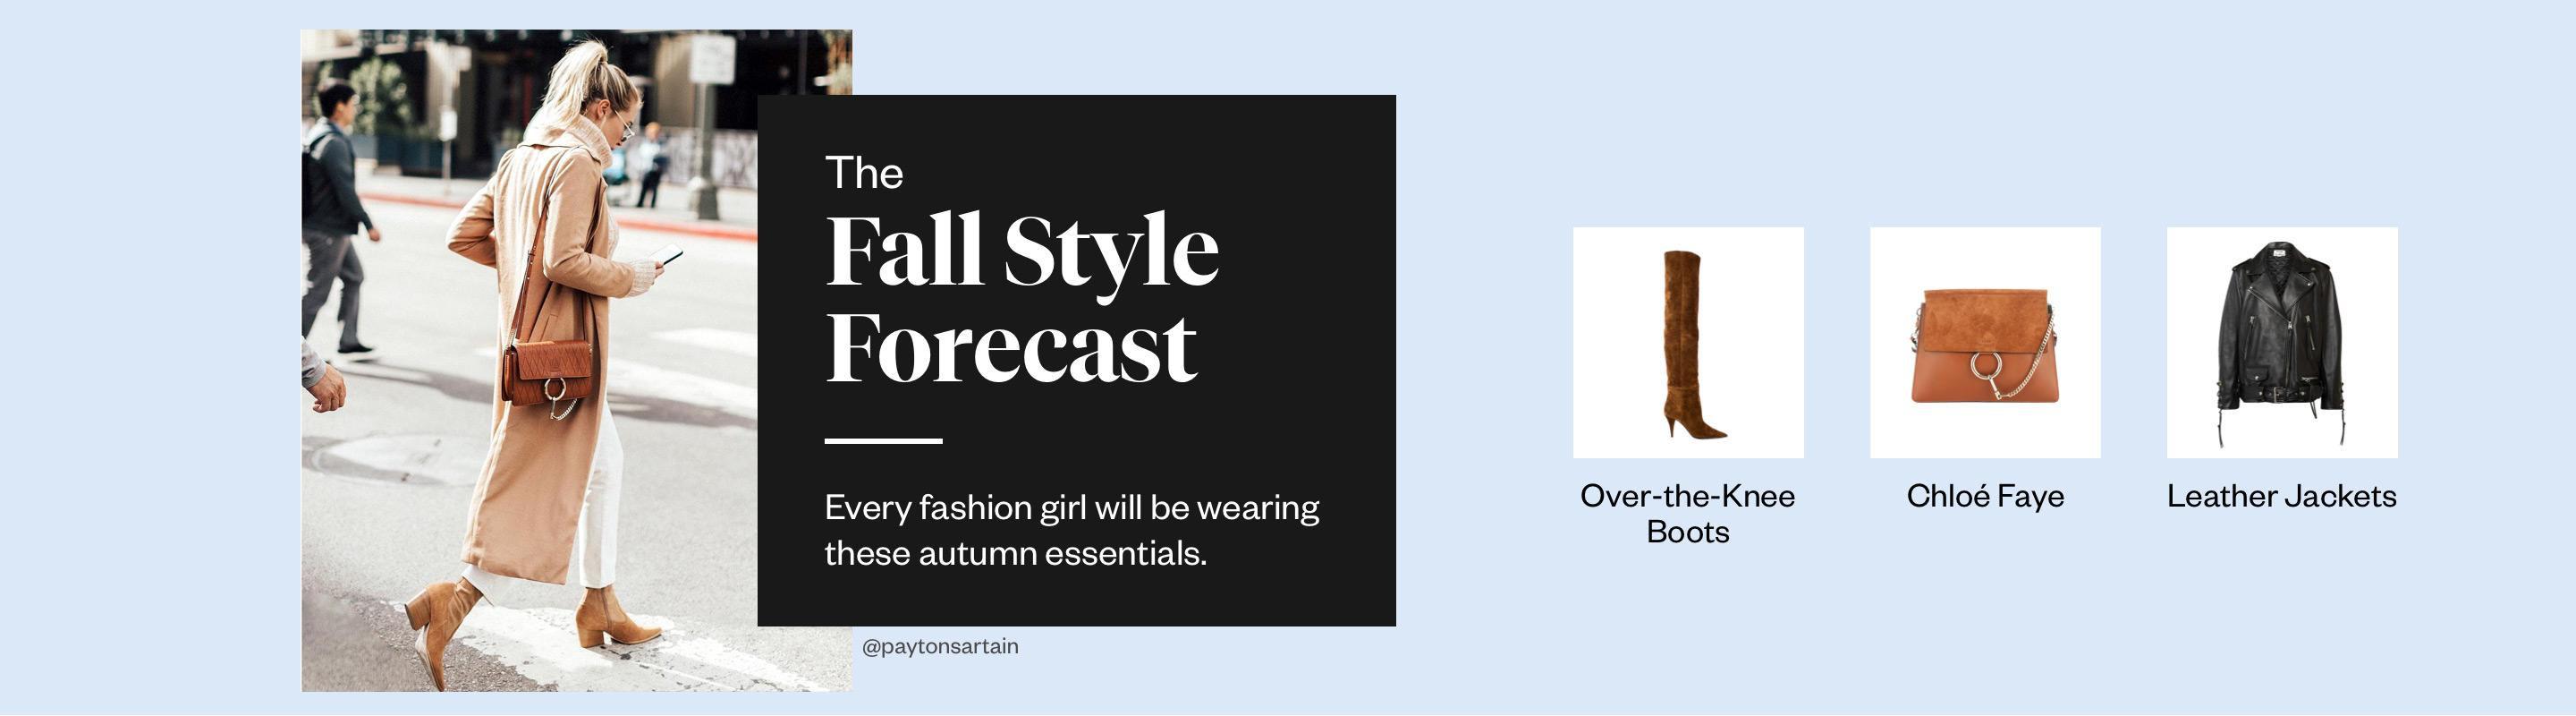 The Fall Style Forecast